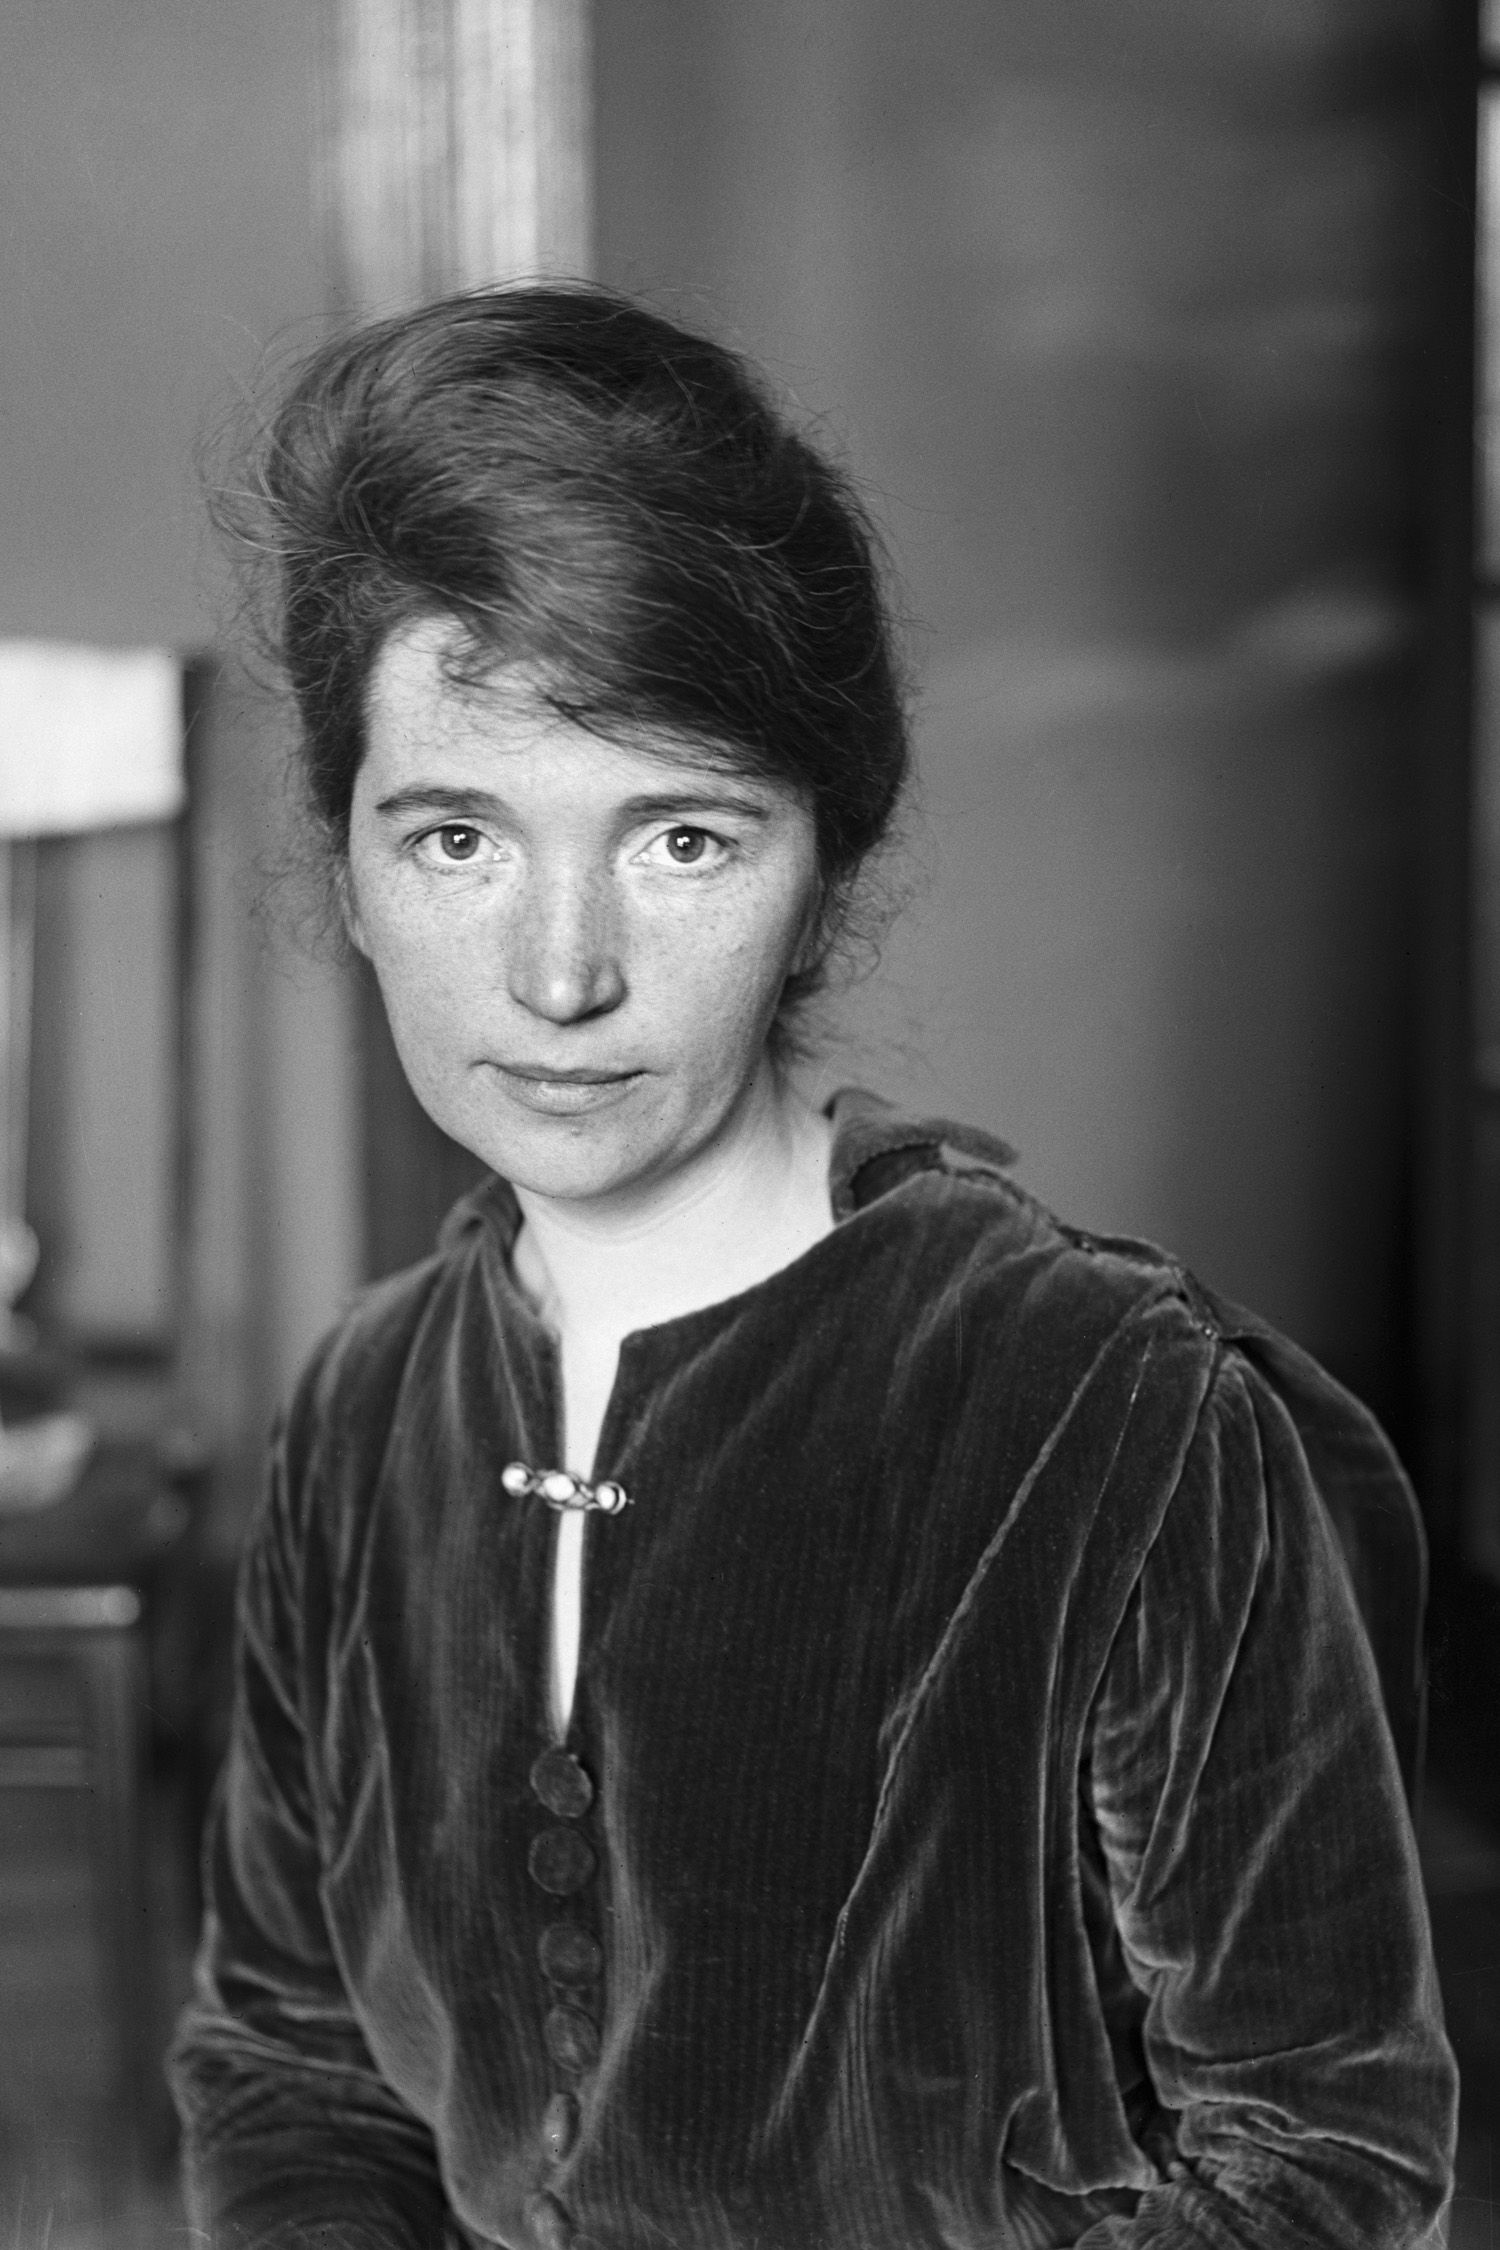 "<p><i data-redactor-tag=""i"">Pushed for birth control rights</i></p><p>Margaret Higgins Sanger, born in 1879, was an early advocate for birth control, using speeches and writings to convey her messages. Sanger opened the first birth control clinic in the U.S. in 1916 and was arrested shortly after&nbsp&#x3B;for distributing information on contraception. Sanger, who at her core believed it was important to liberate women from unplanned pregnanices in order to generate social change,&nbsp&#x3B;eventually founded the American Birth Control League in 1921, which grew into <a href=""https://www.plannedparenthood.org/"" target=""_blank"" data-tracking-id=""recirc-text-link"">Planned Parenthood</a>.</p>"